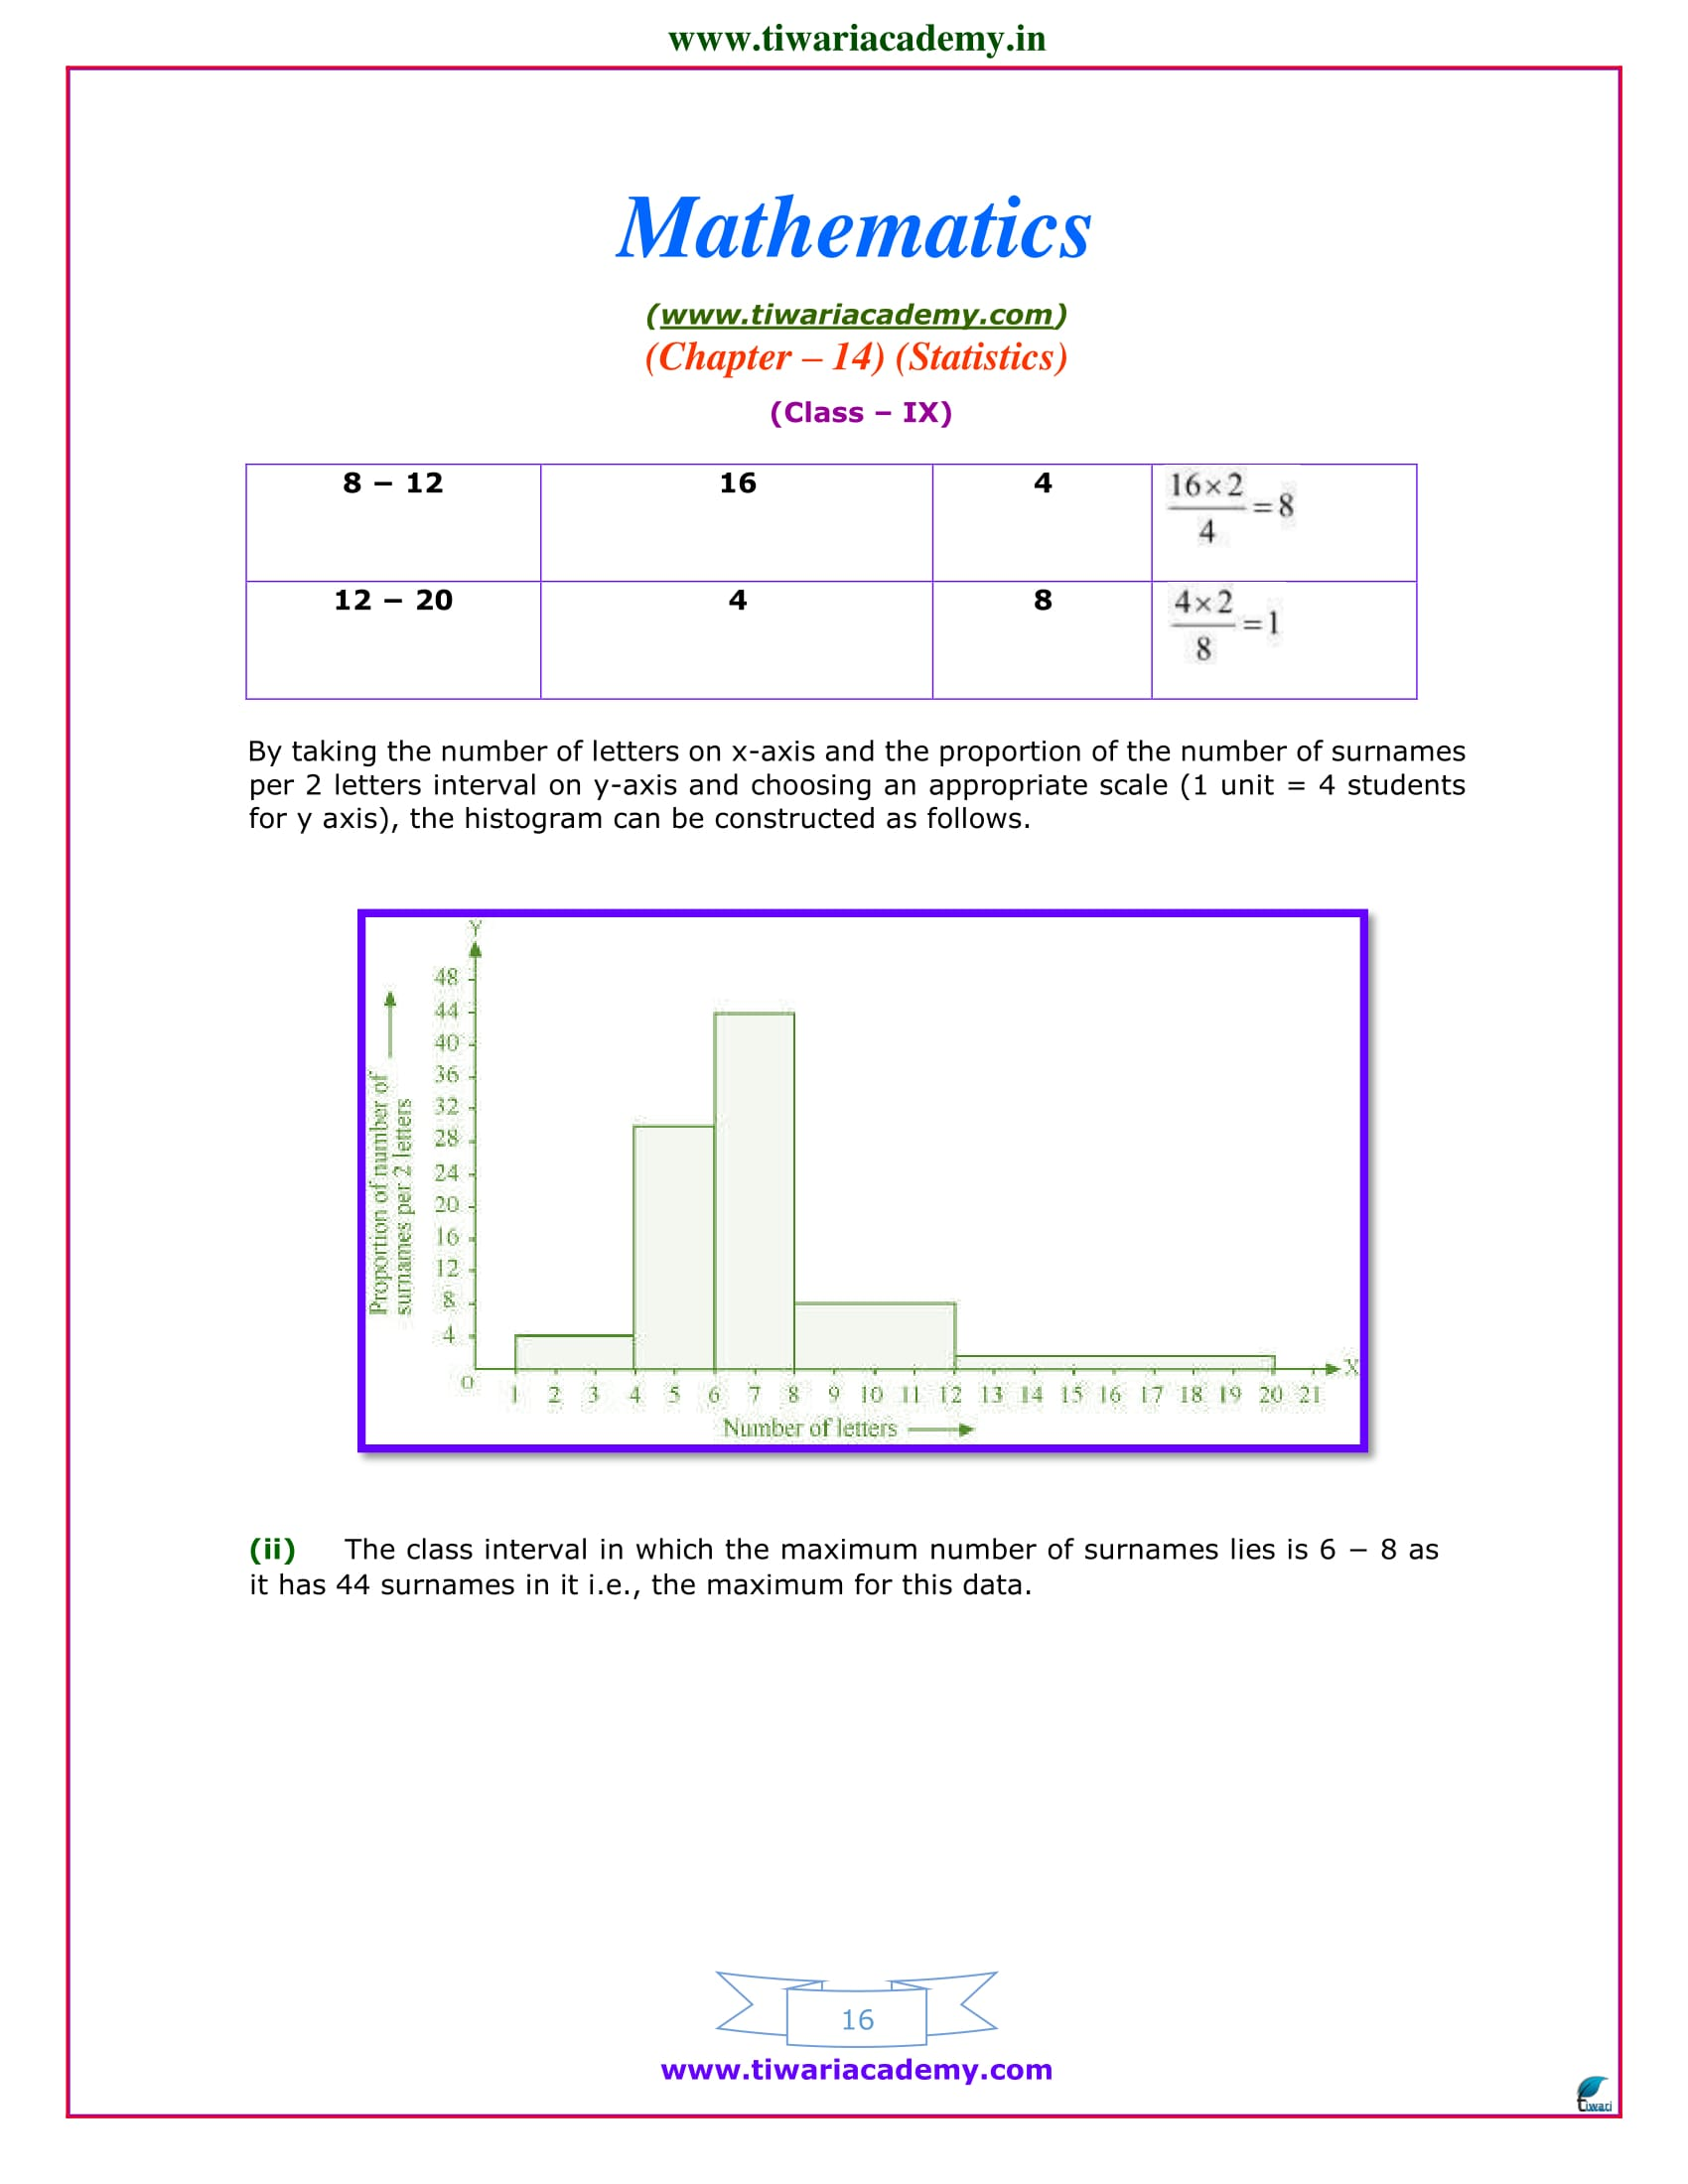 9 maths chapter 14 exercise 14.3 solutions ncert